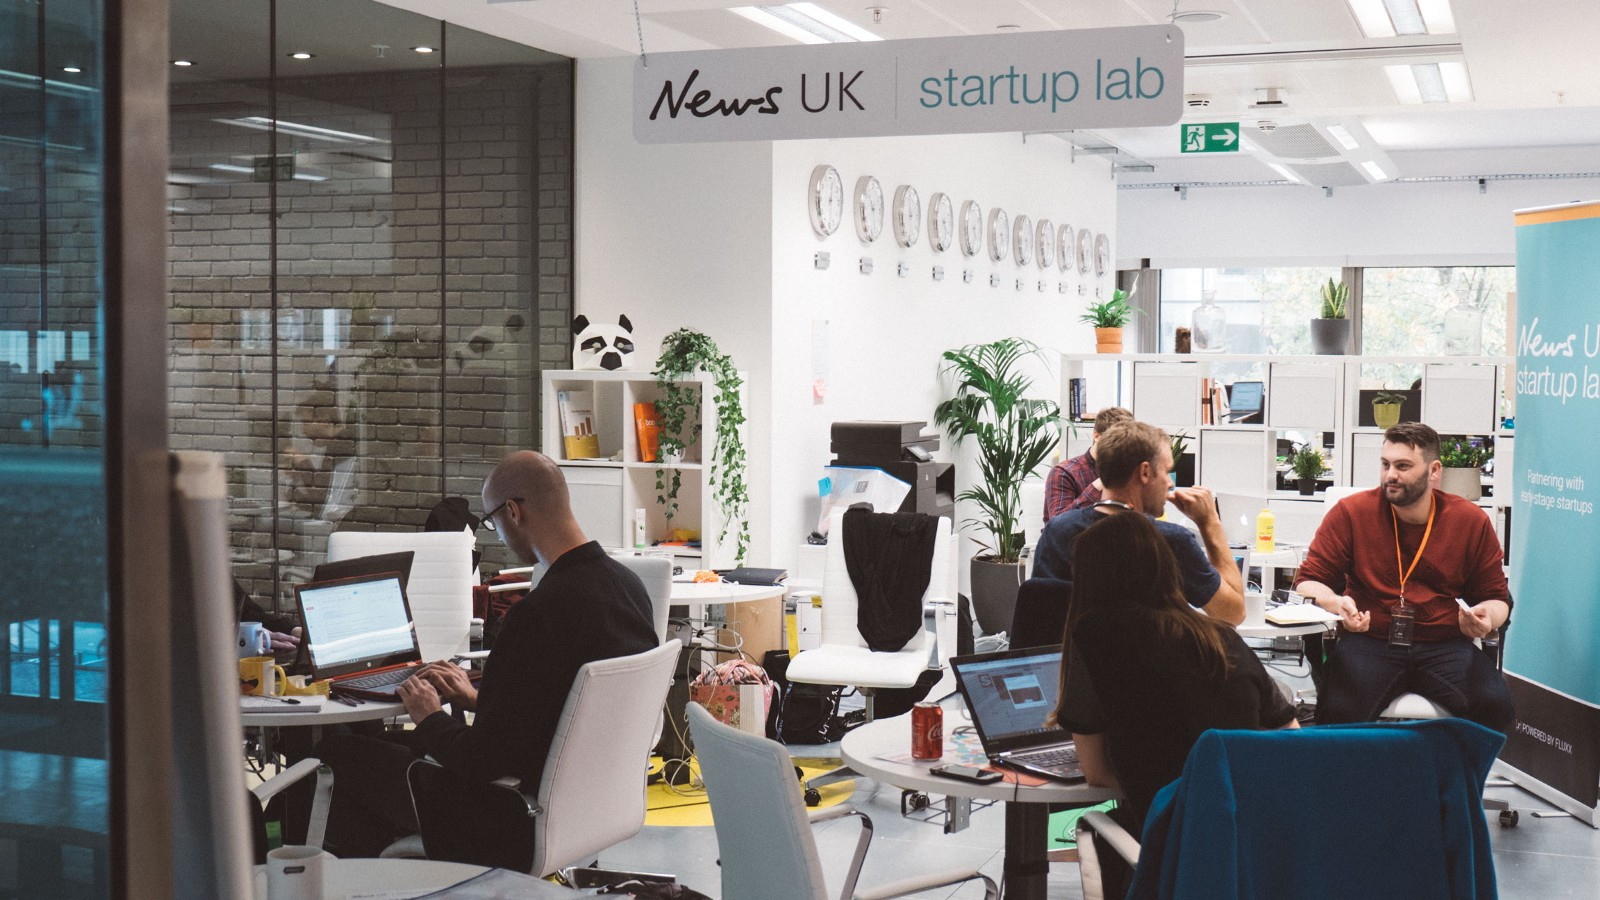 dba9abed64 What we learned about company culture by running a startup lab